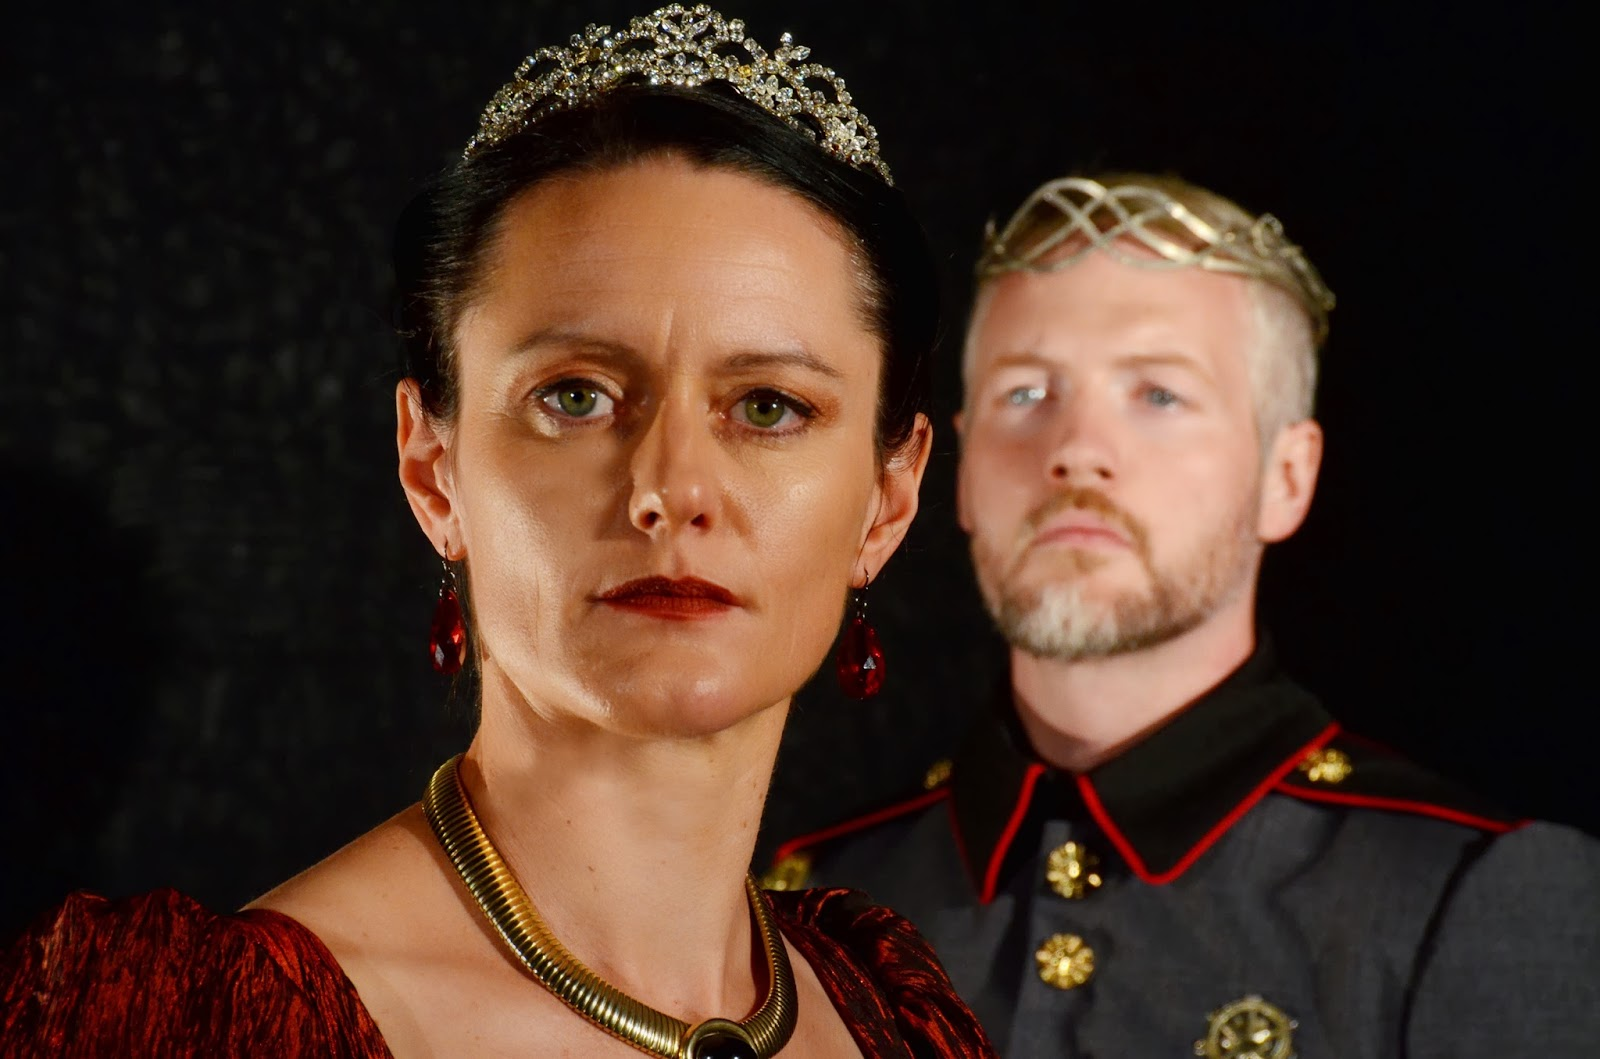 Tina Mitchell and Terence MacSweeny as the Scottish couple in Southwest Shakespeare's production of the Scottish play. (Photo, Mark Gluckman)